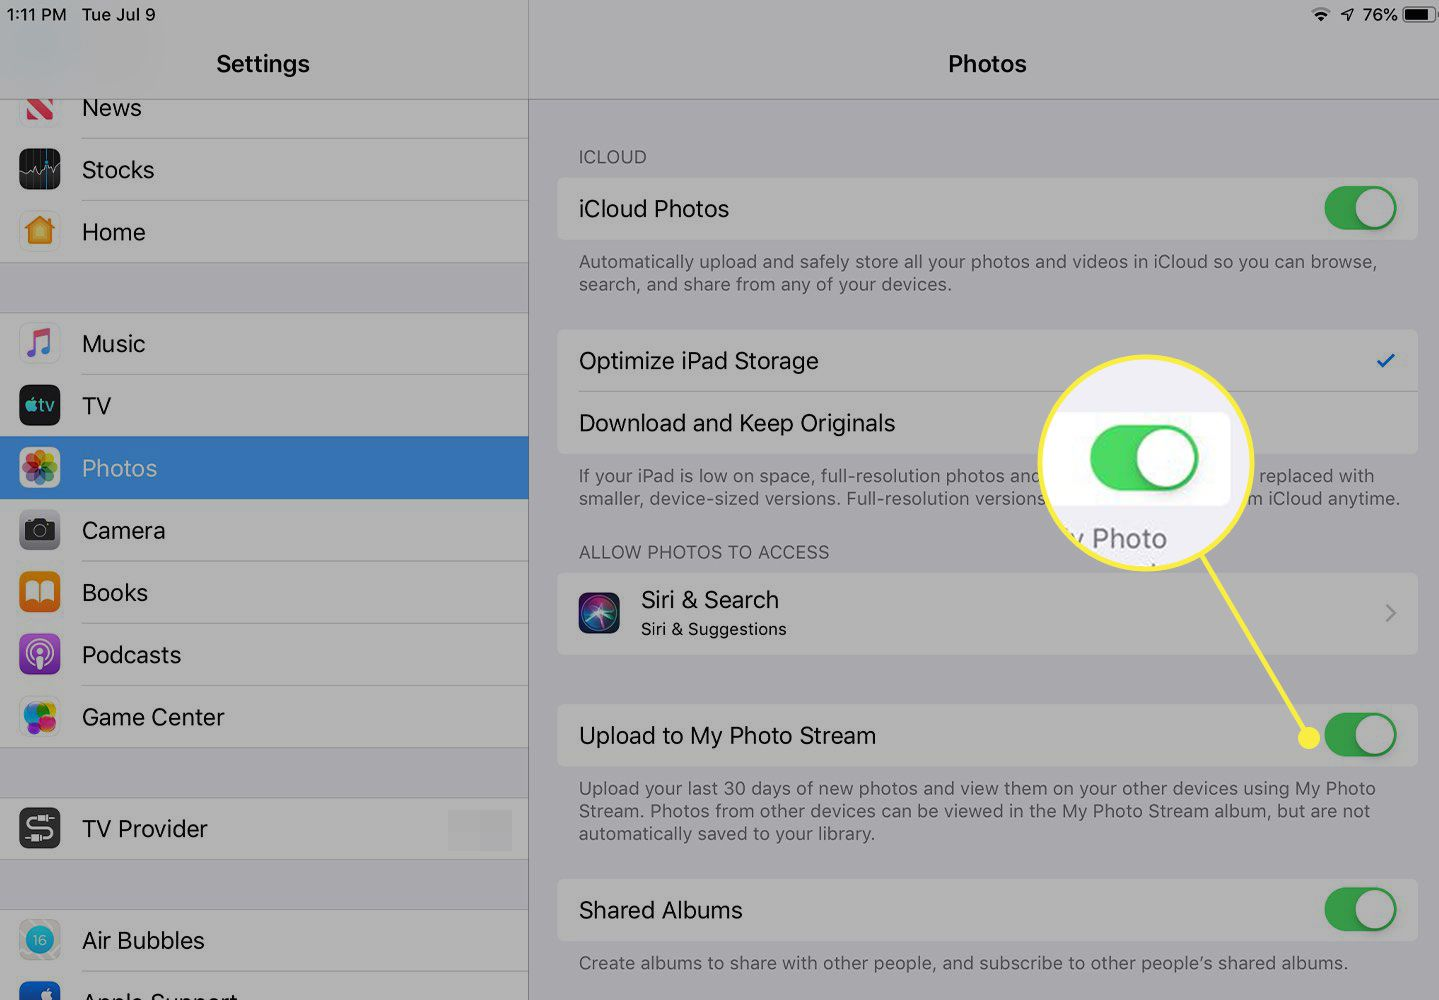 A screenshot of iPad Photos settings with the switch next to